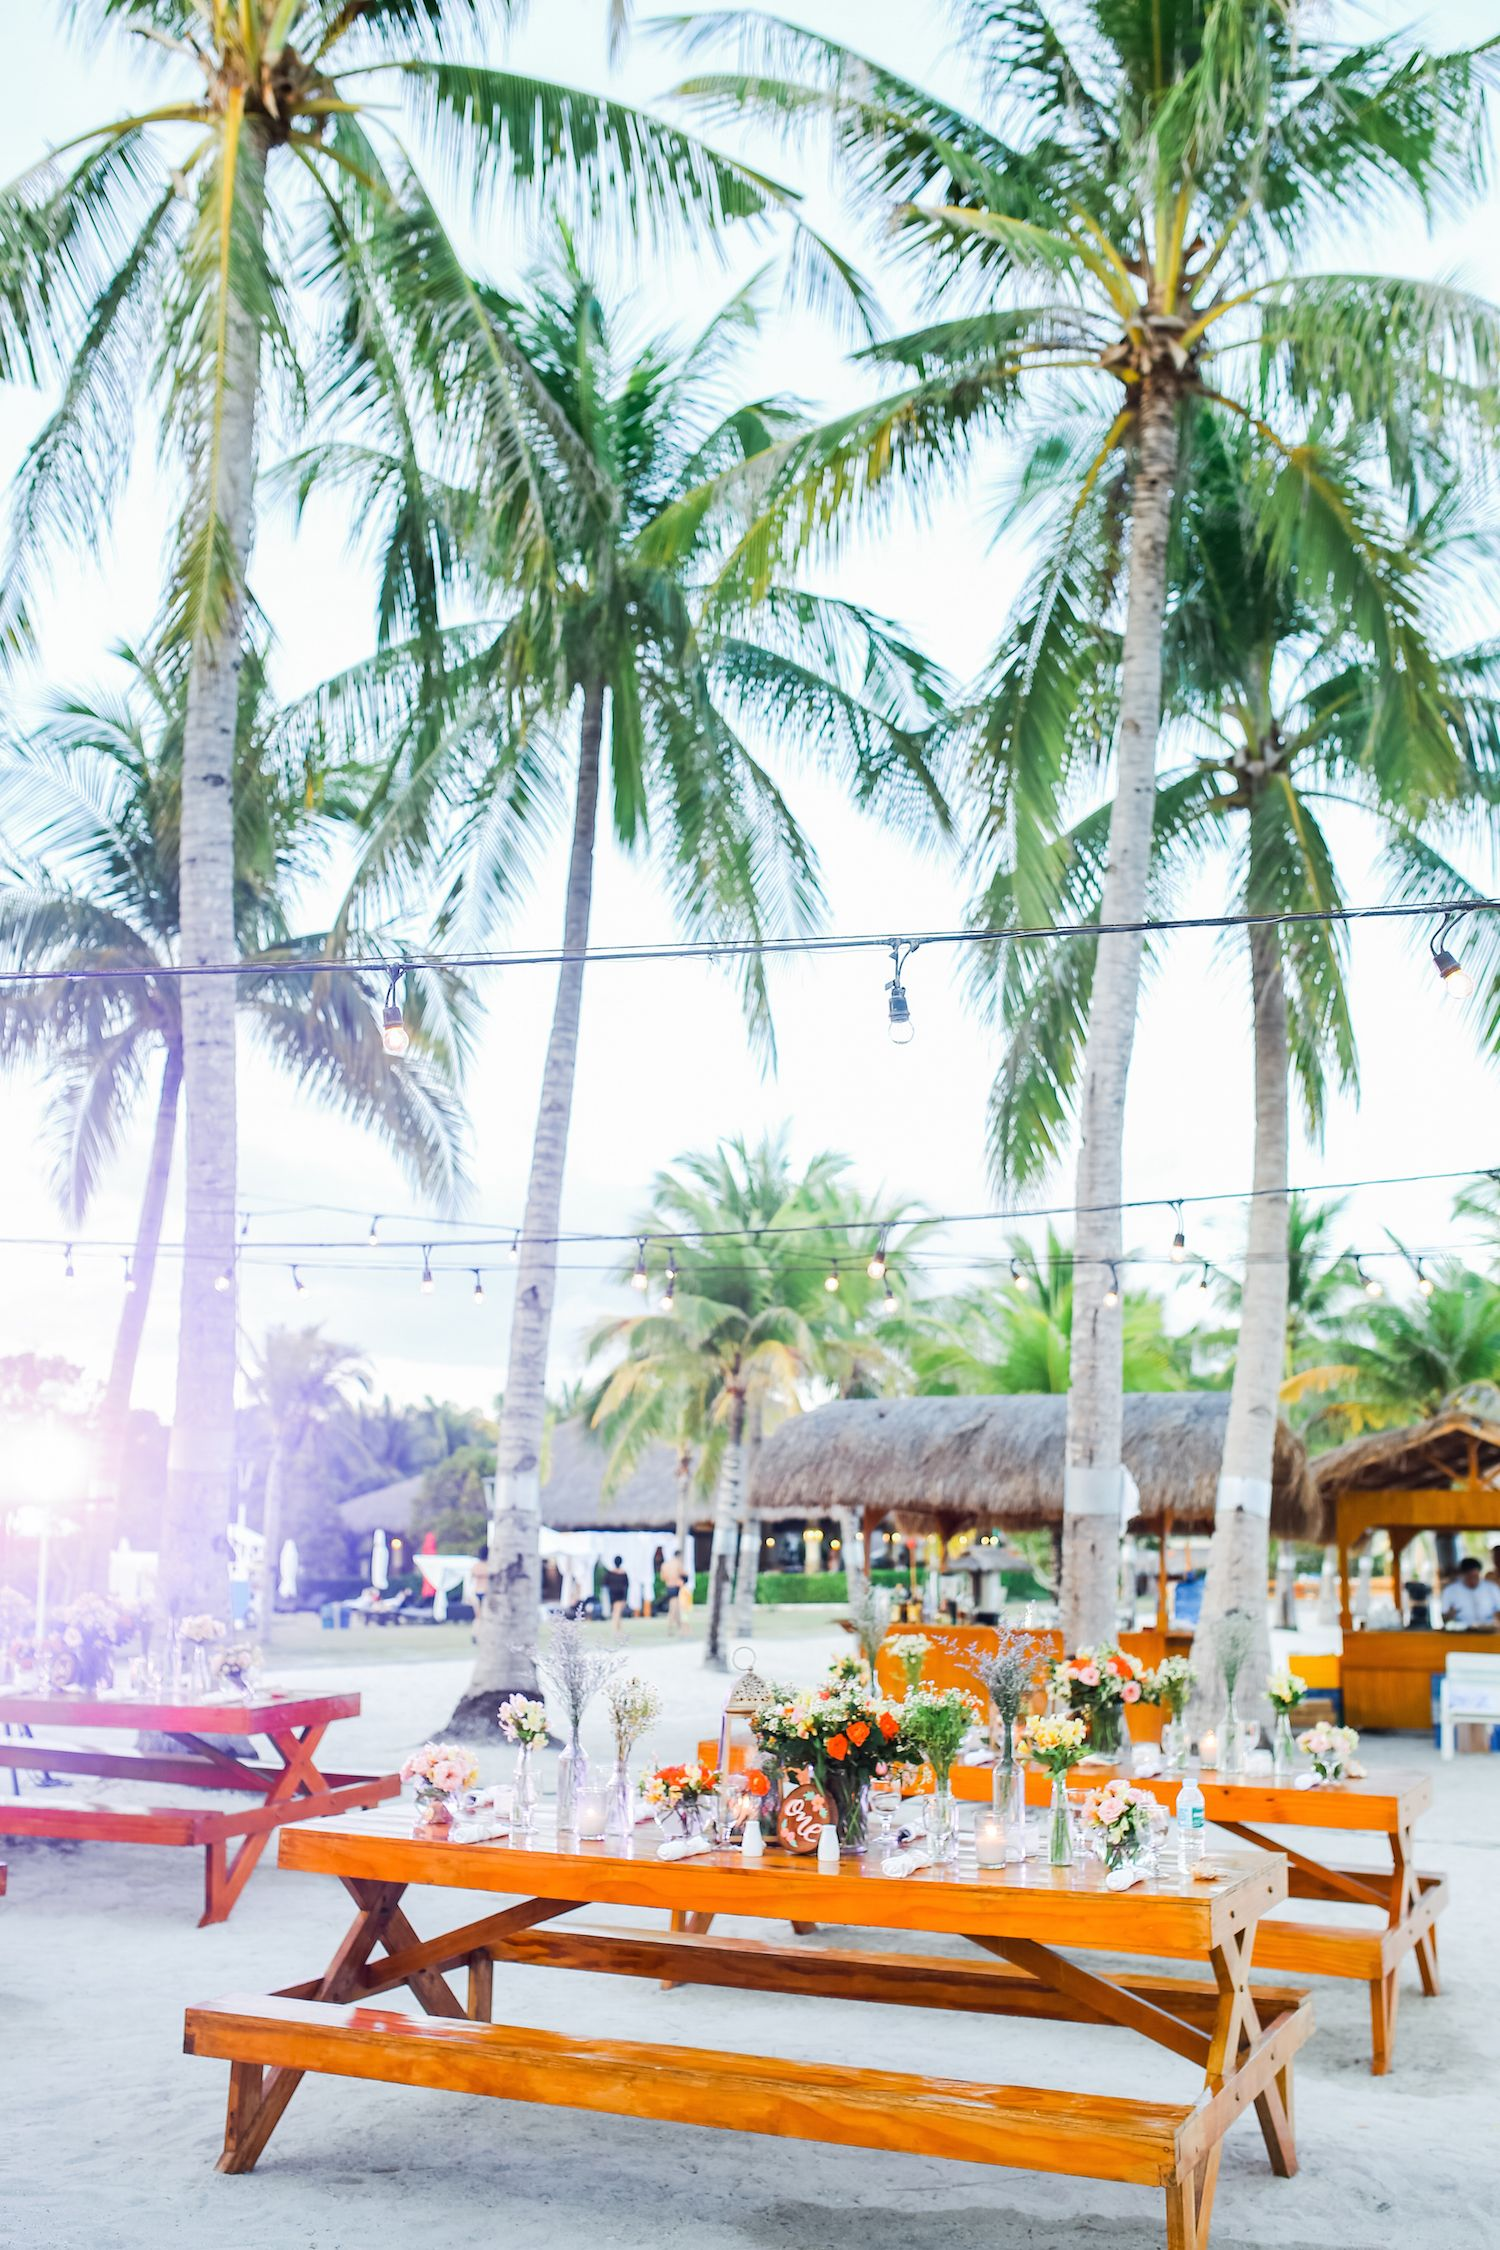 Amazing Beach Wedding In The Philippines Wedding Venues Wedding